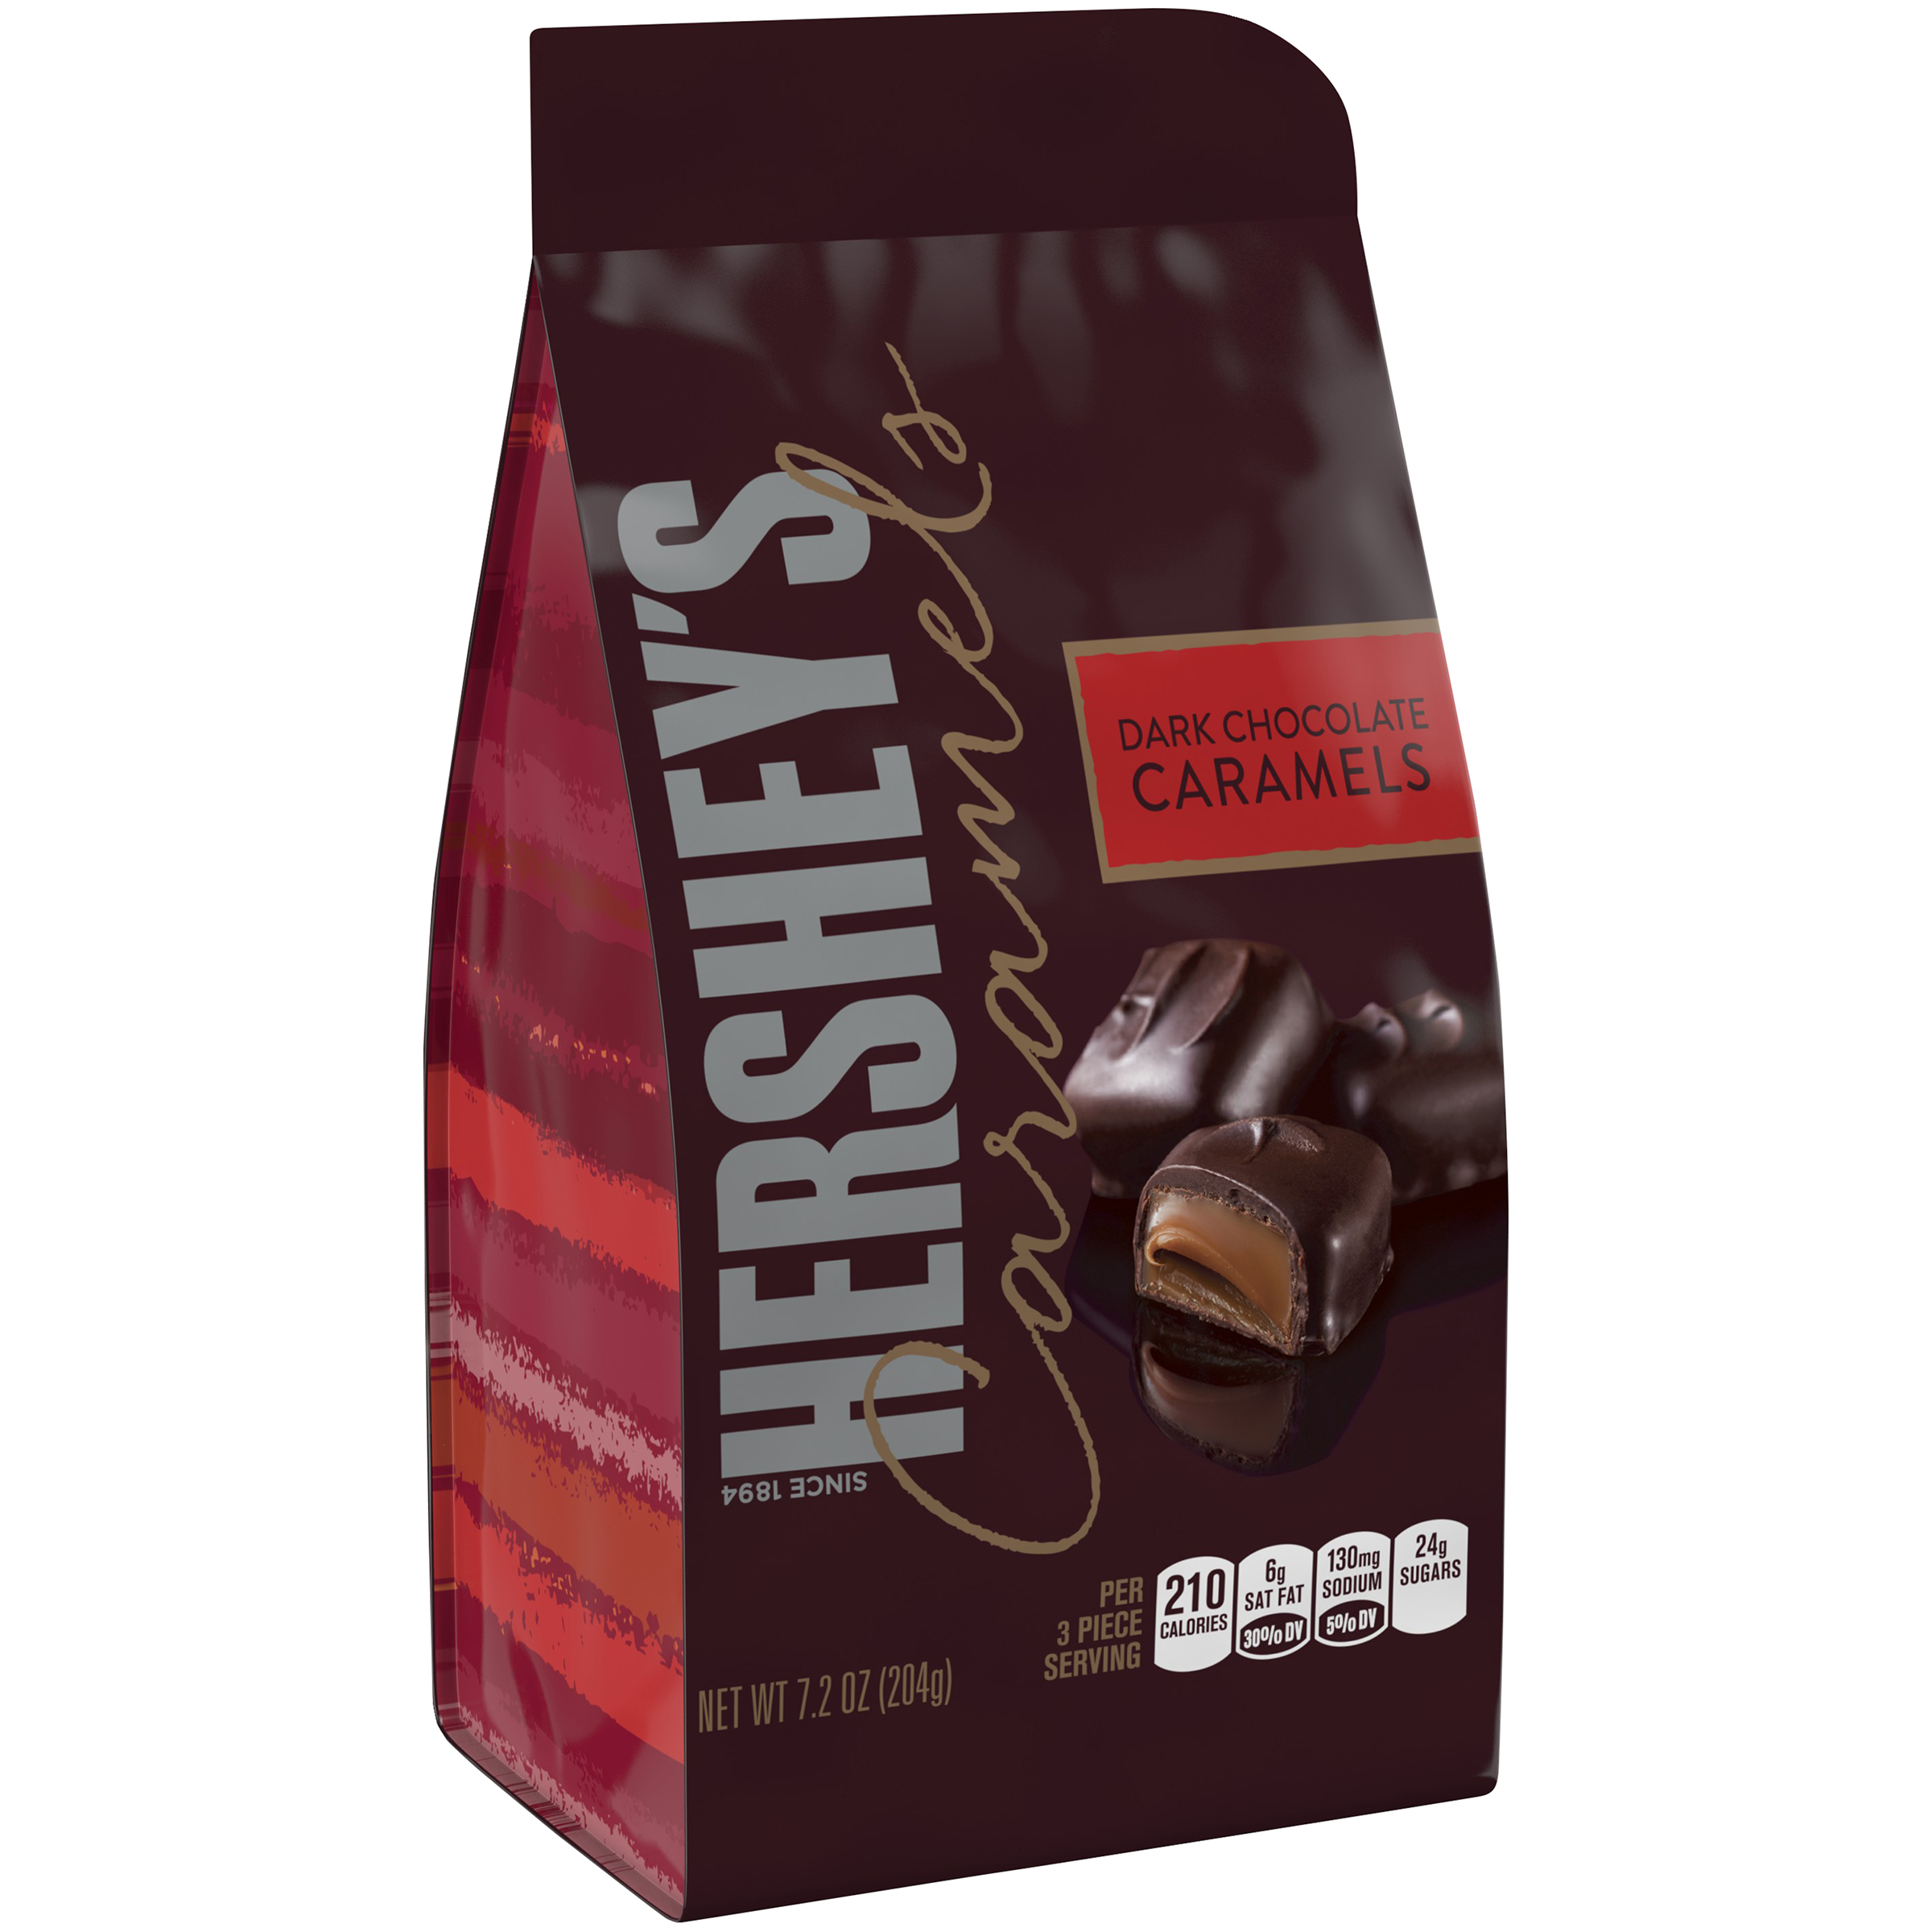 Hershey's Caramels Dark Chocolate Caramels 7 oz by Hershey Foods